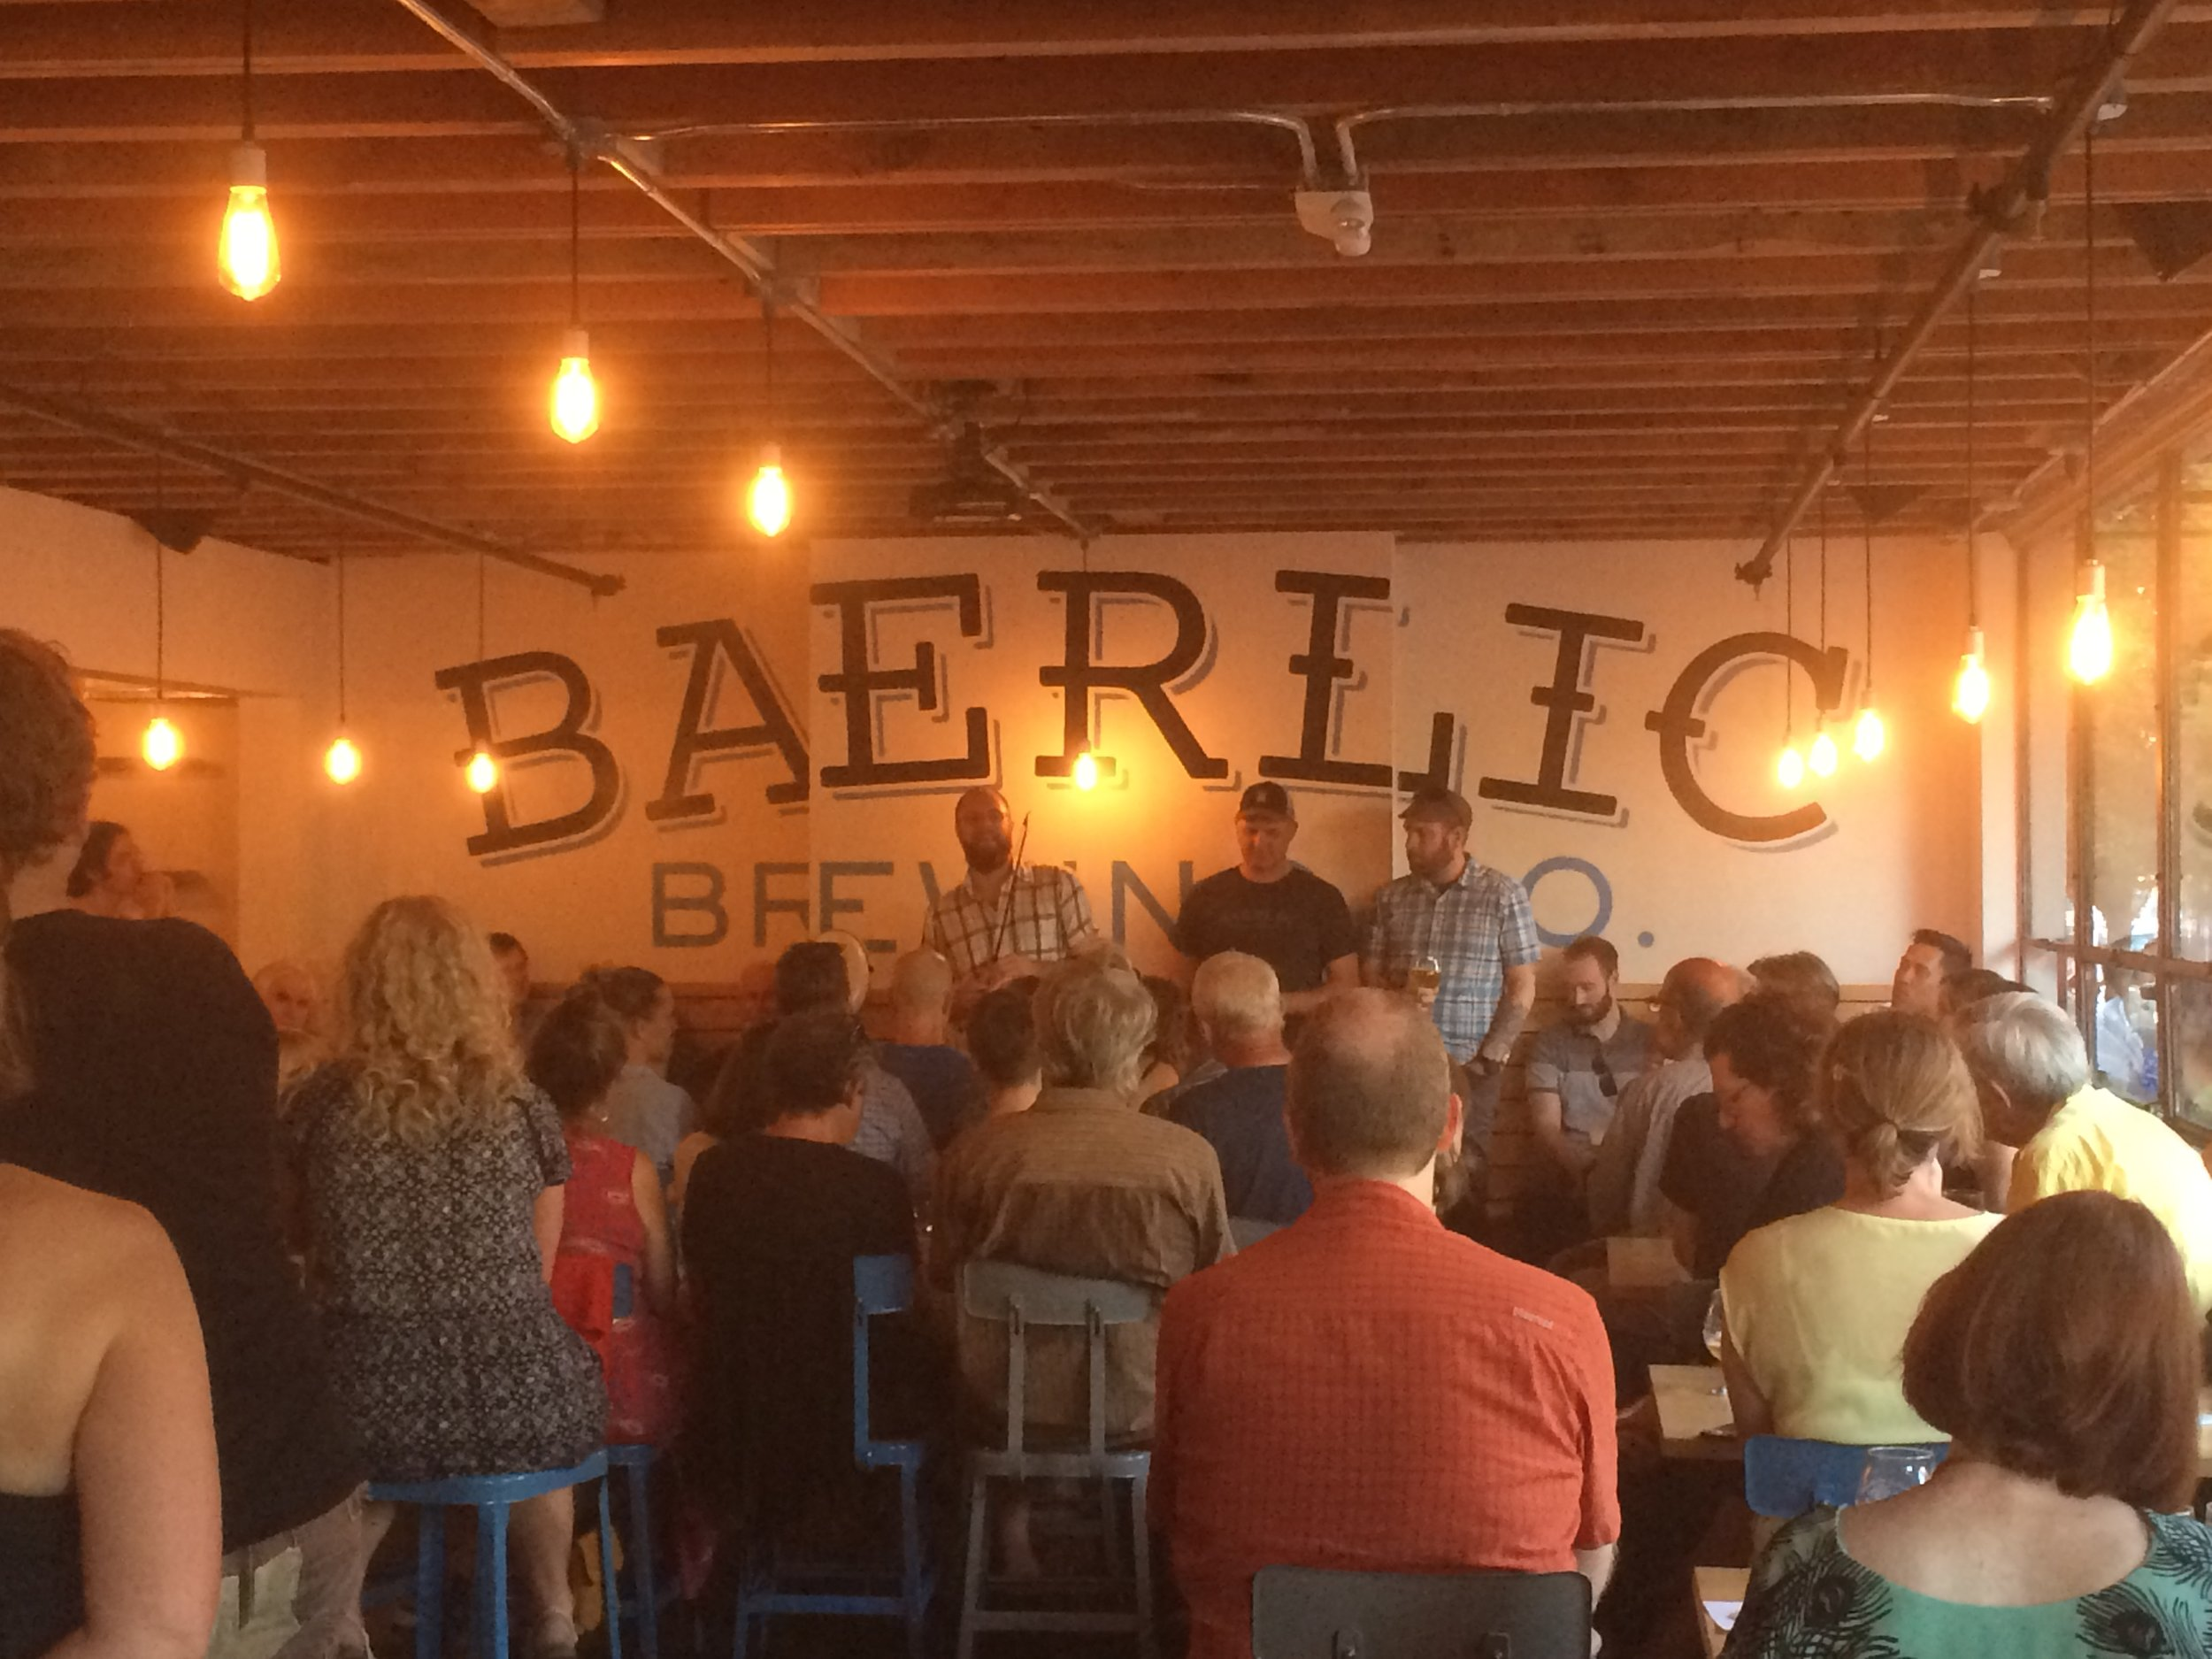 """The two owners and brewers at Baerlic Brewing shared with the audience how they are adapting traditional styles to the modern taste. The third beer on offer was called """"Old Blood & Guts"""", and went perfectly with Bach's Suite no. 4"""